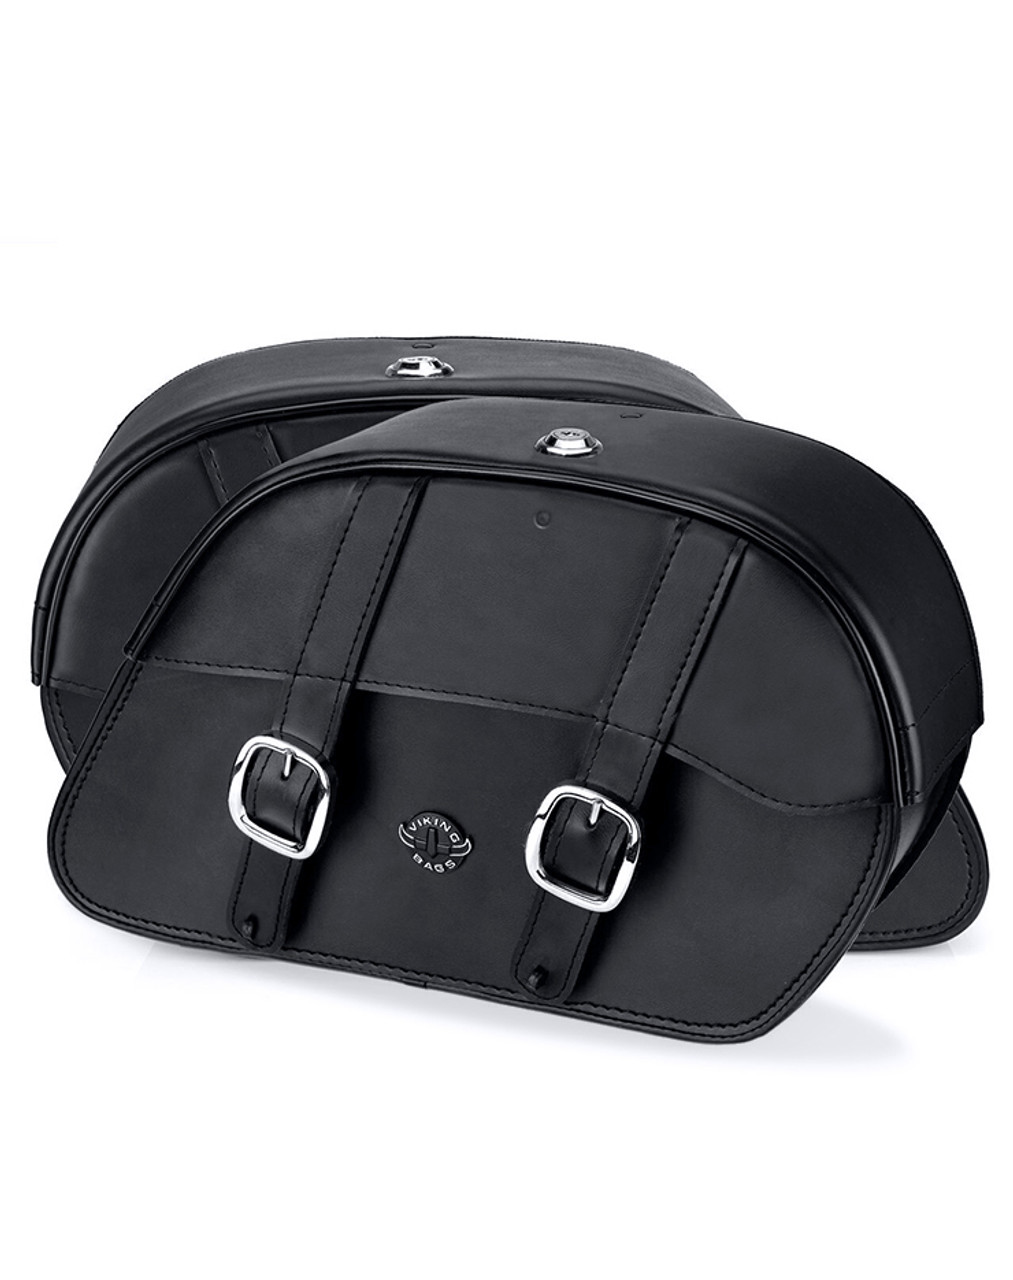 VikingBags Skarner Large Double Strap Victory Vegas Leather Motorcycle Saddlebags both bags view